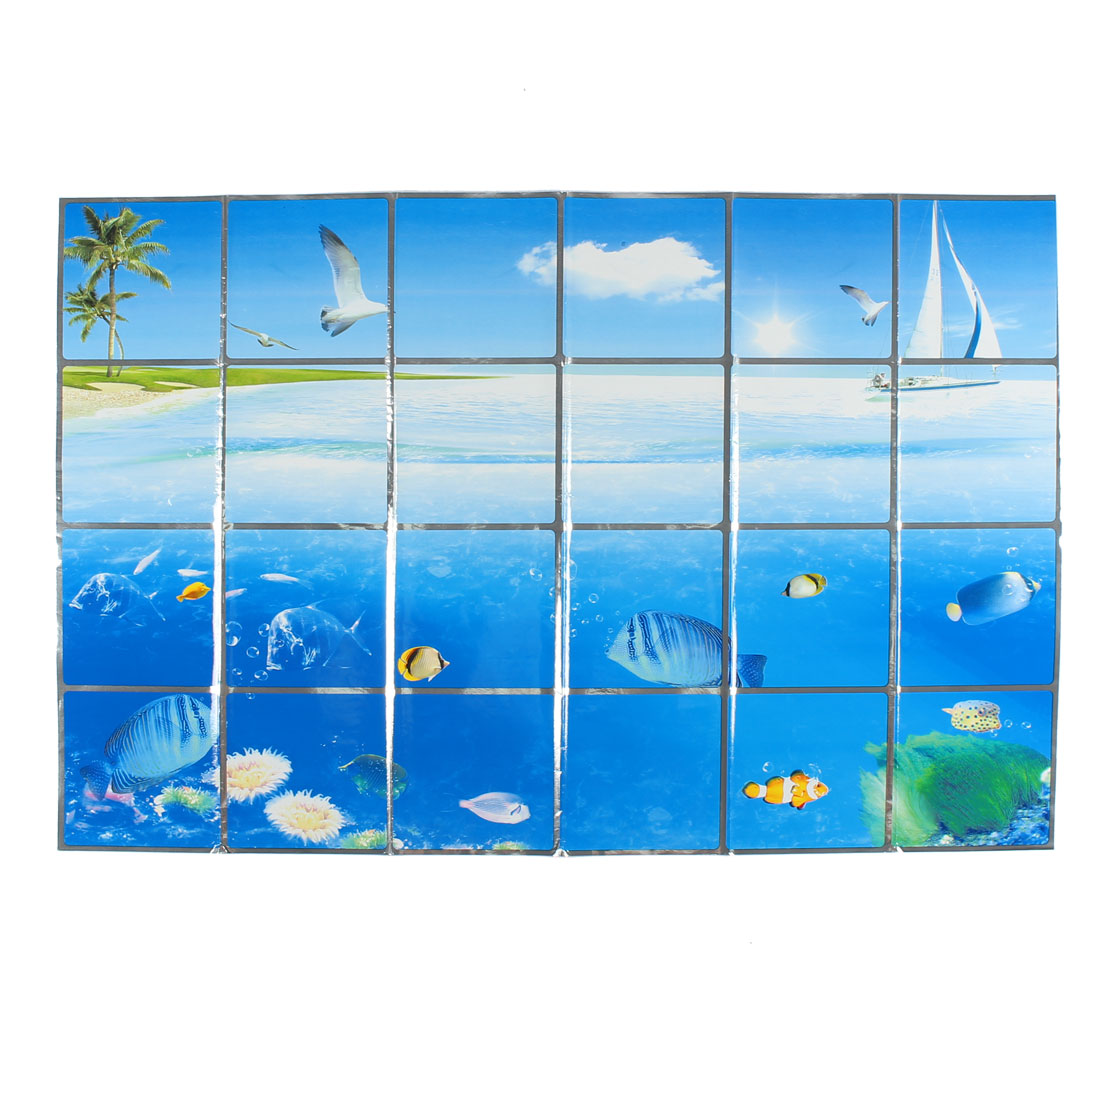 Kitchen Undersea World Pattern Removable Self-adhesive Oilproof Wall Window Sticker 90 x 60cm